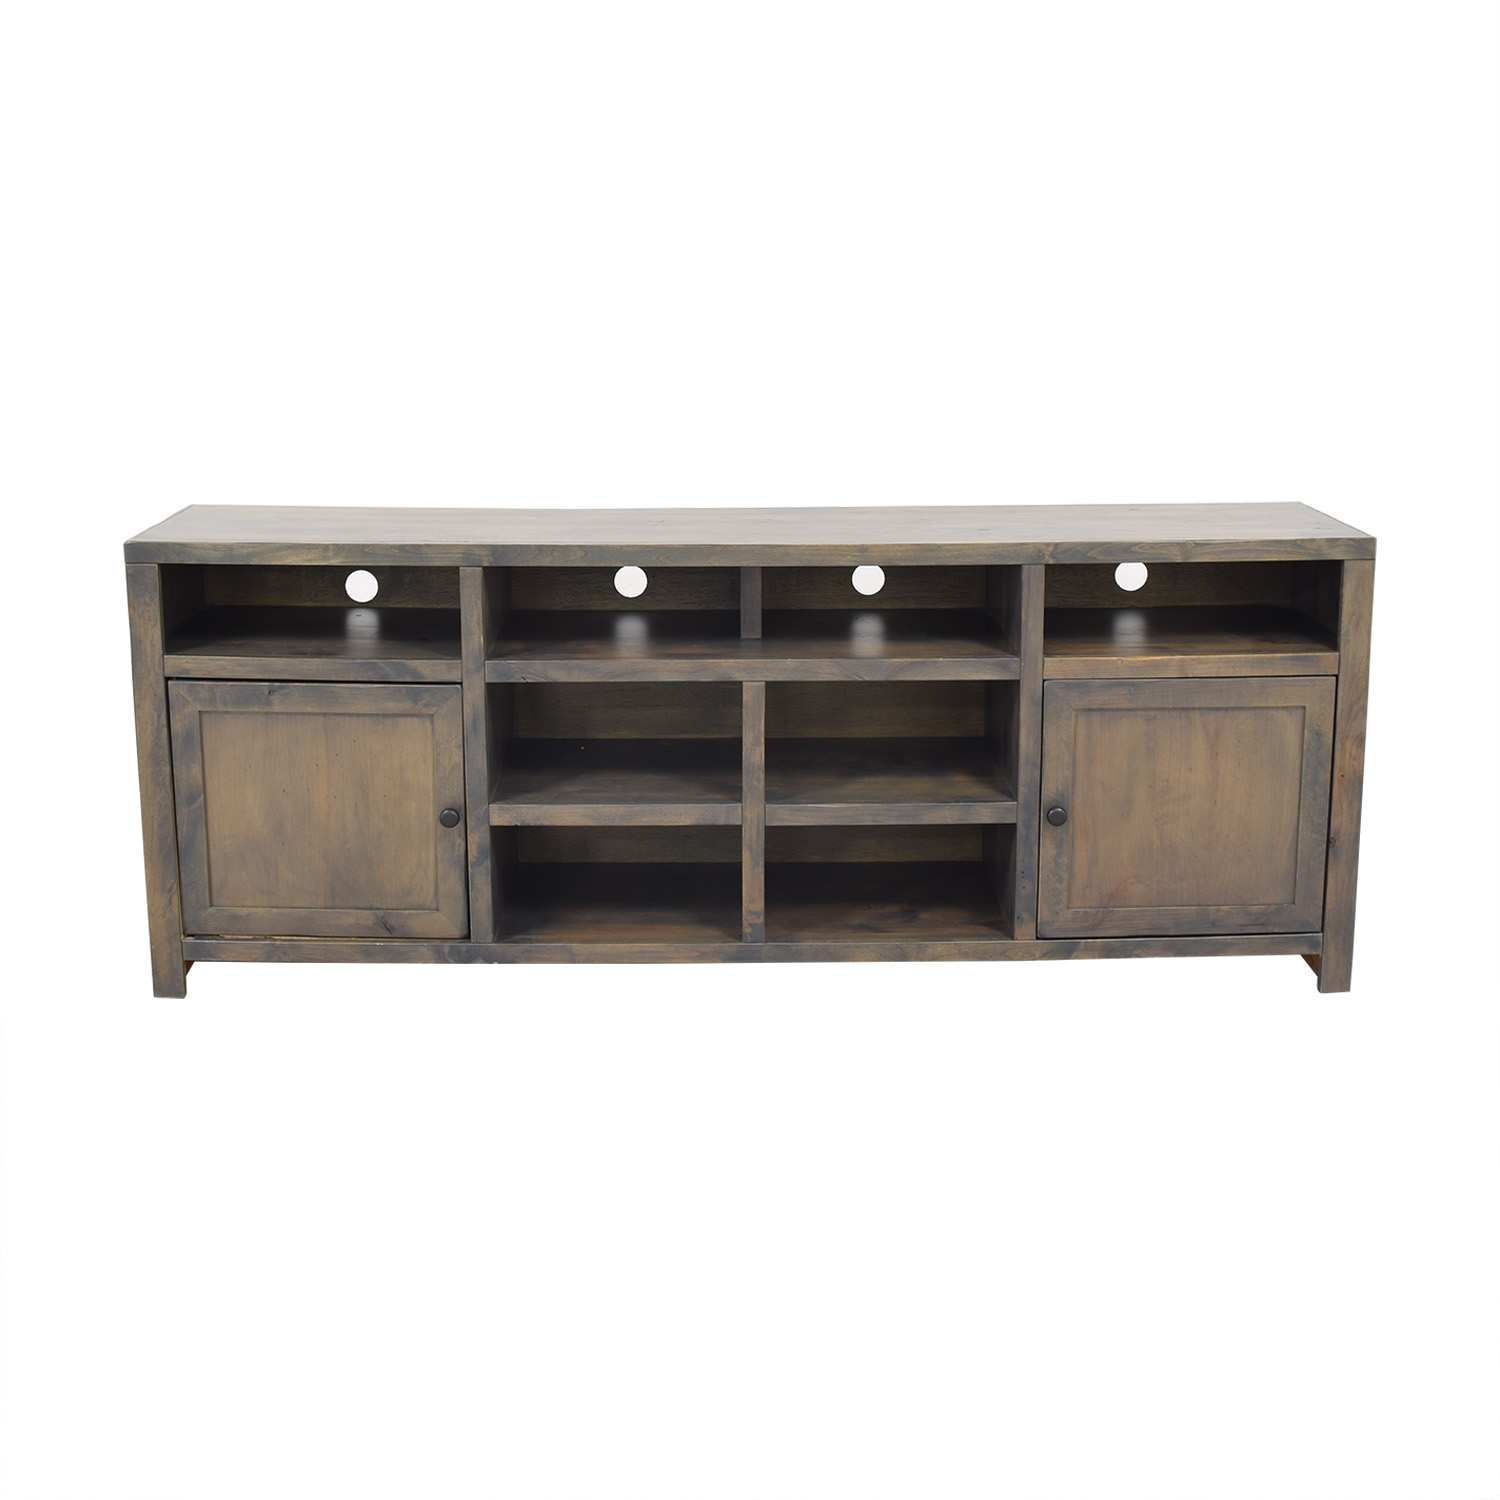 Legends Furniture Legends Furniture Joshua Creek Super Console Storage